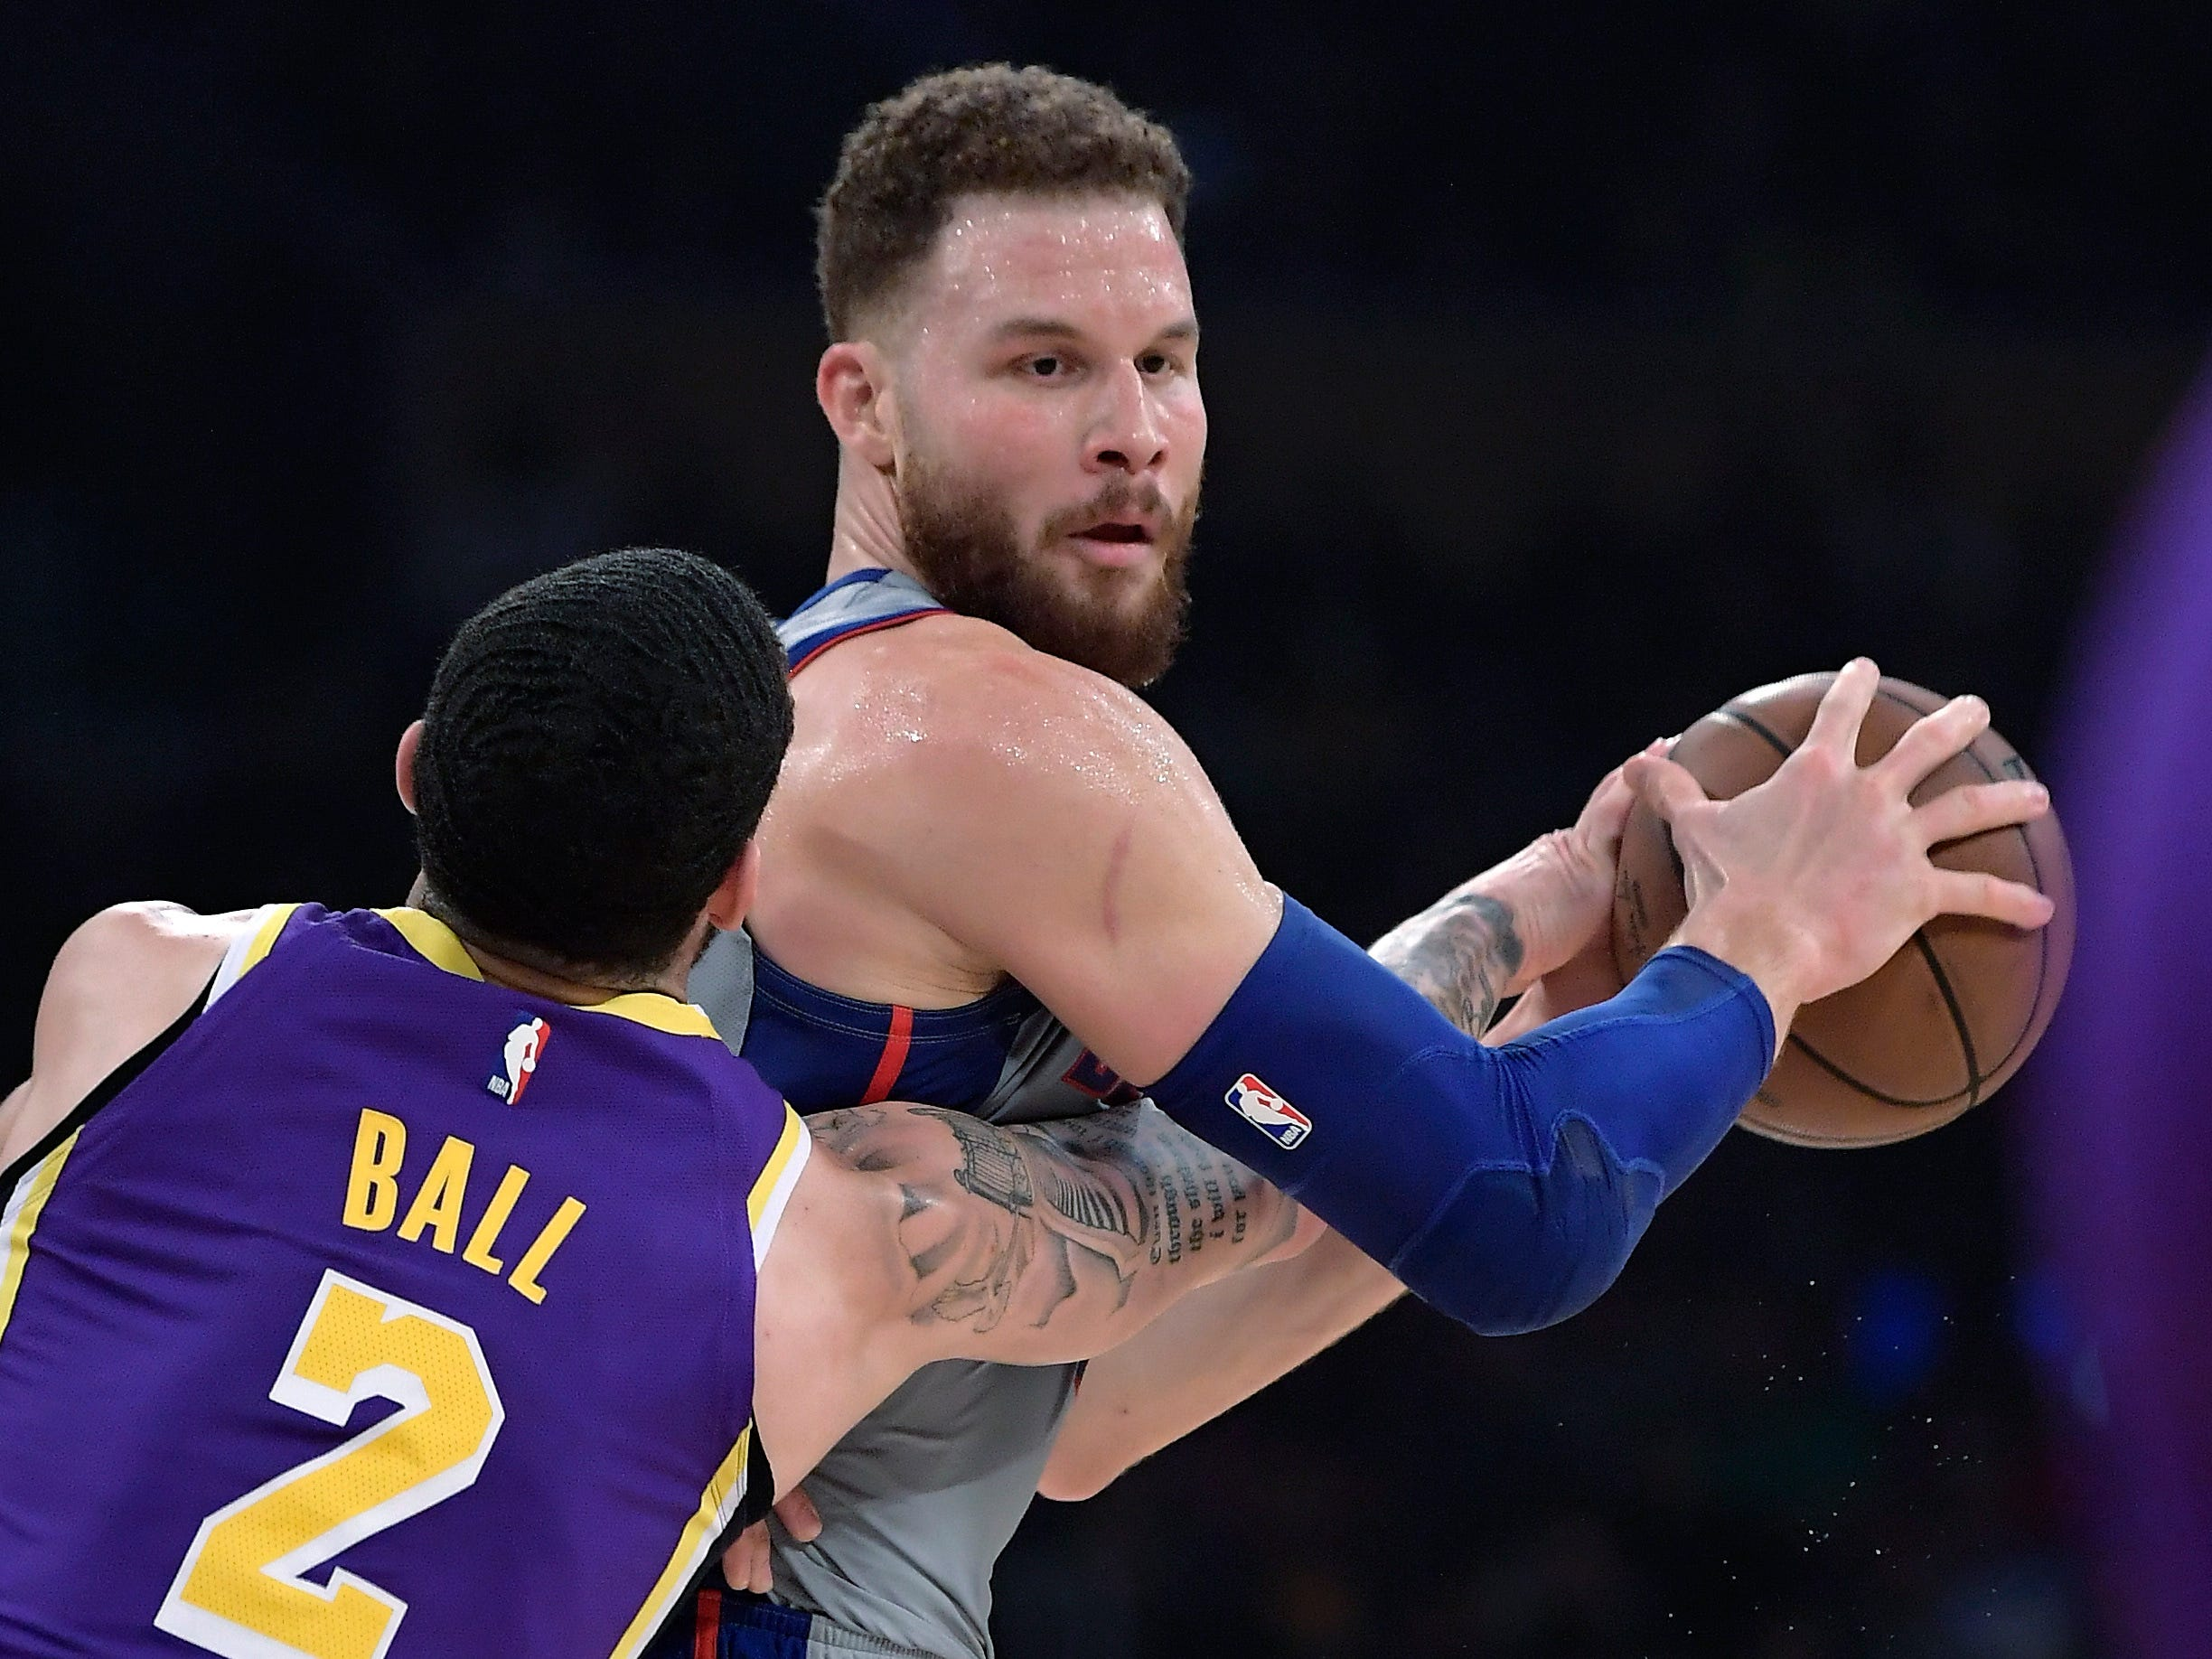 Los Angeles Lakers guard Lonzo Ball, left, reaches for the ball held by Detroit Pistons forward Blake Griffin during the first half.